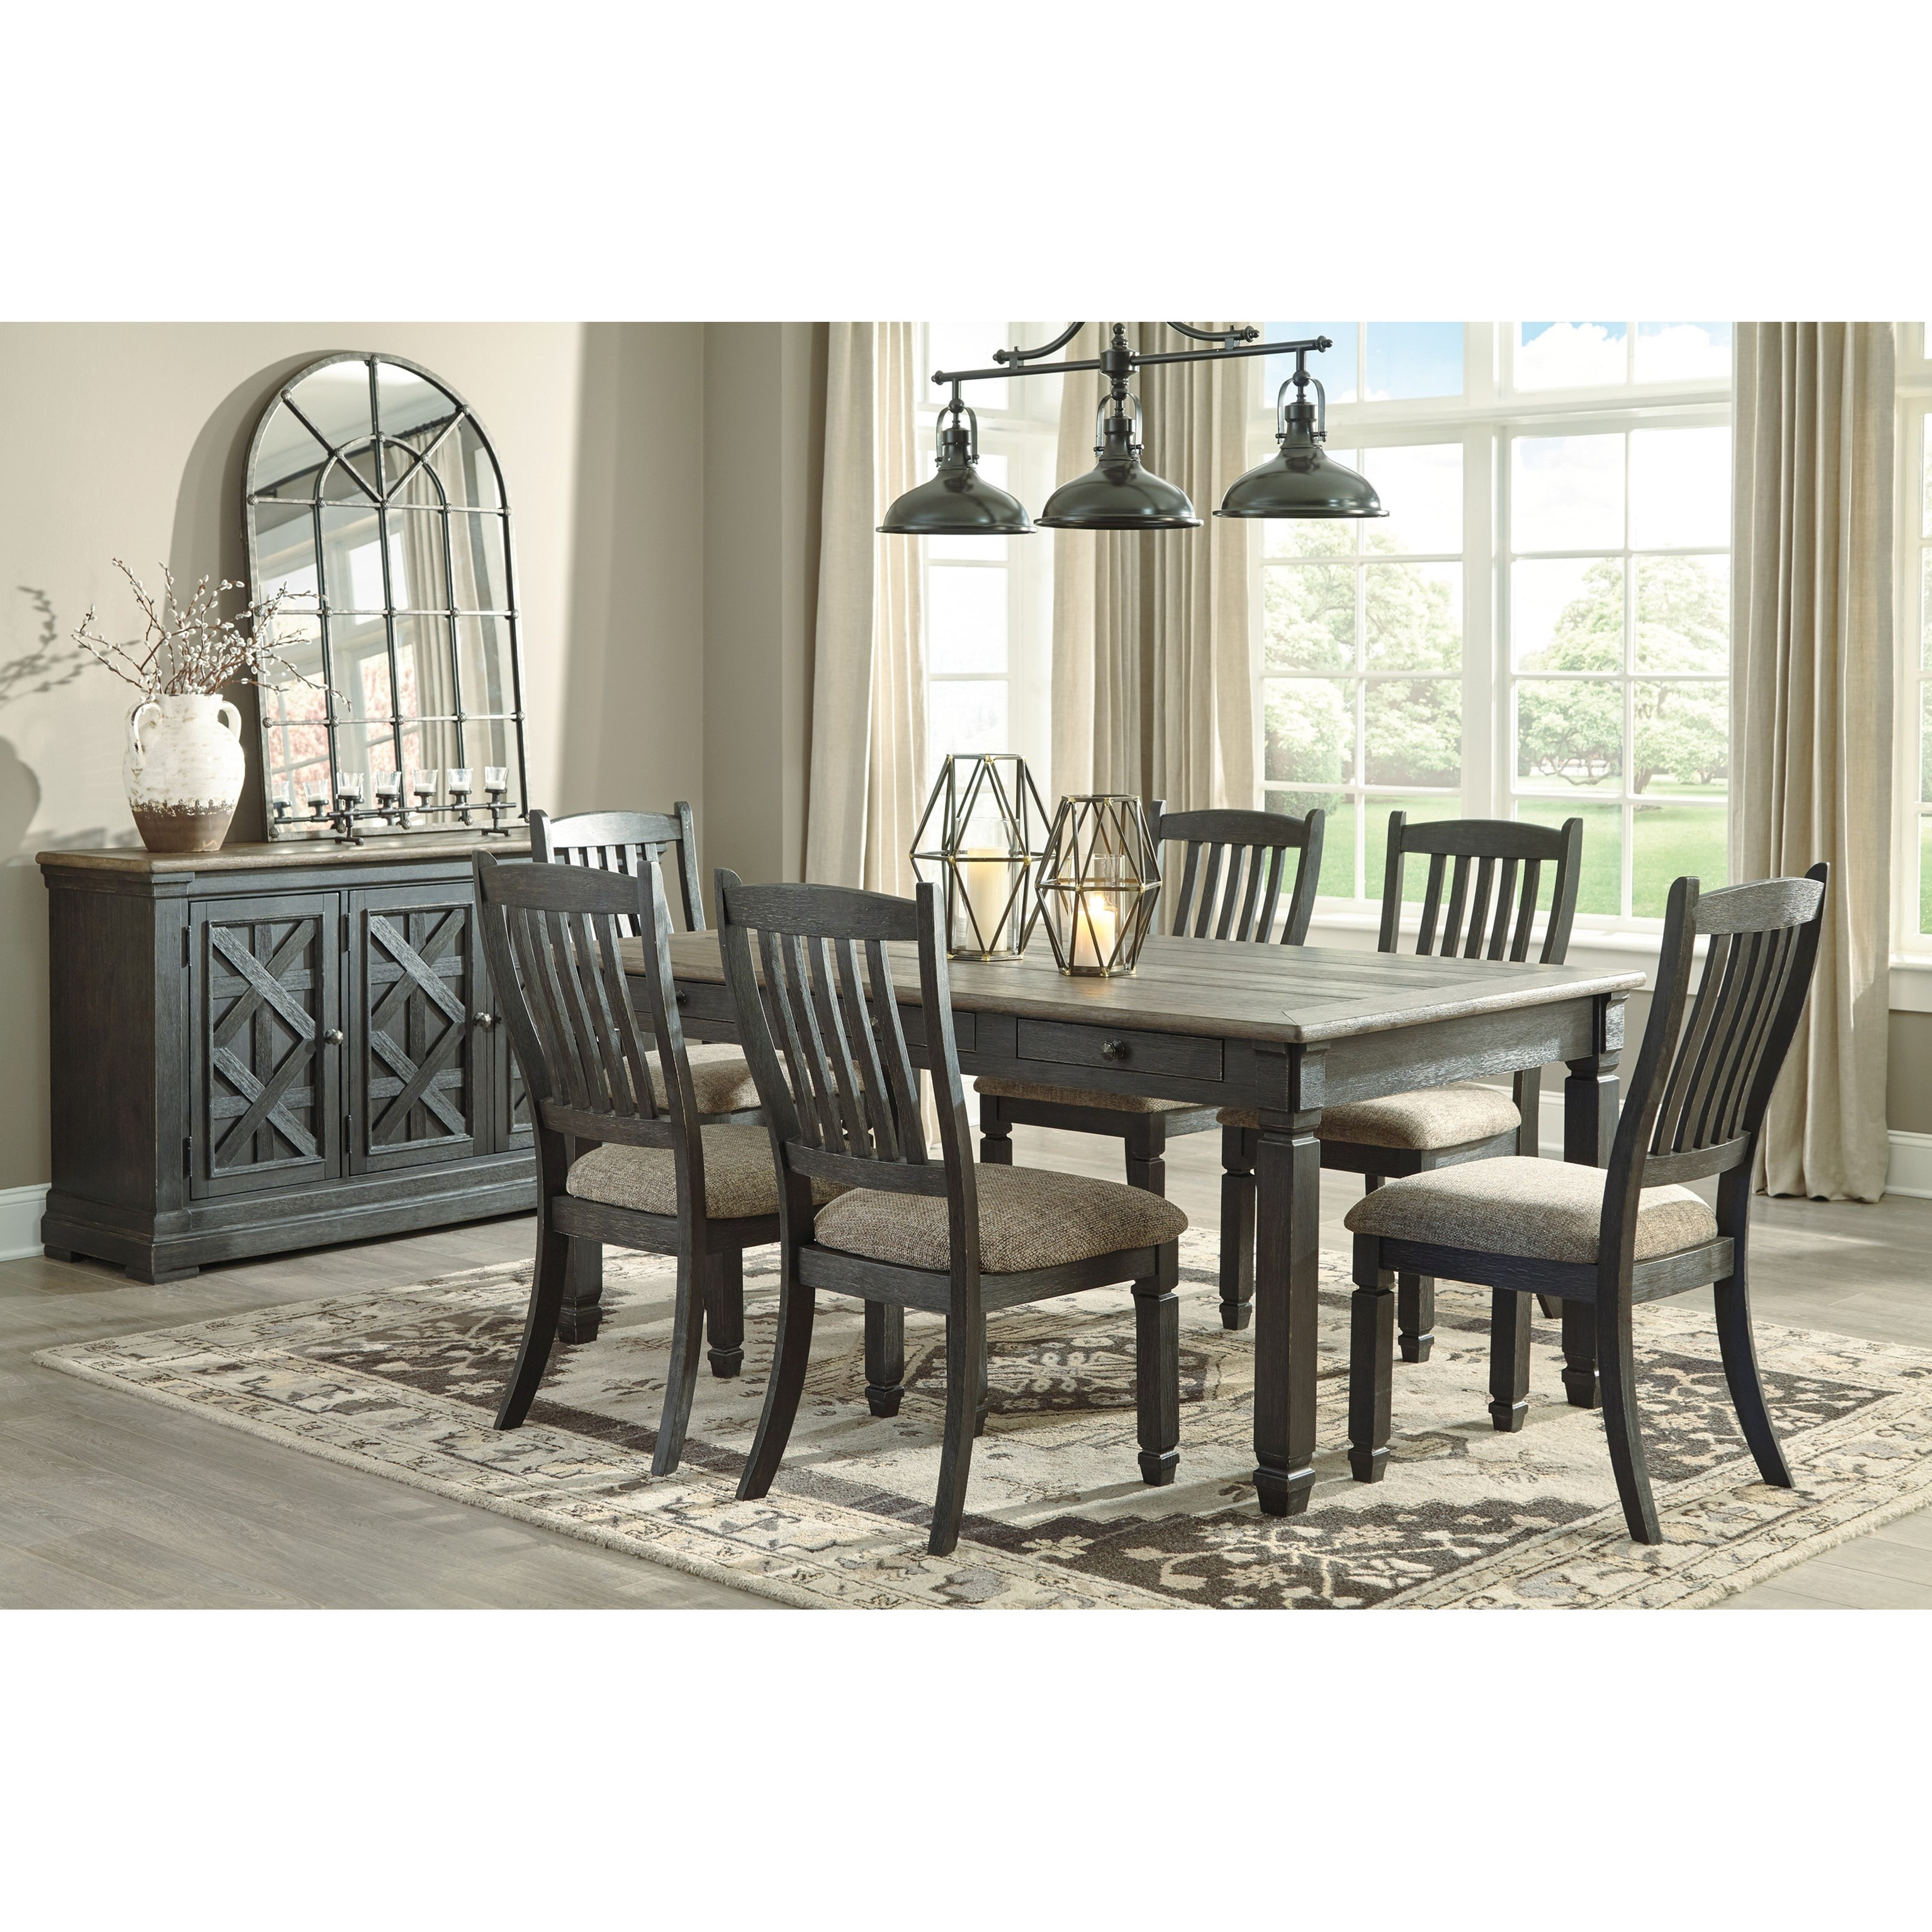 Ashley Dining Room Chairs Signature Design By Ashley Tyler Creek Casual Dining Room